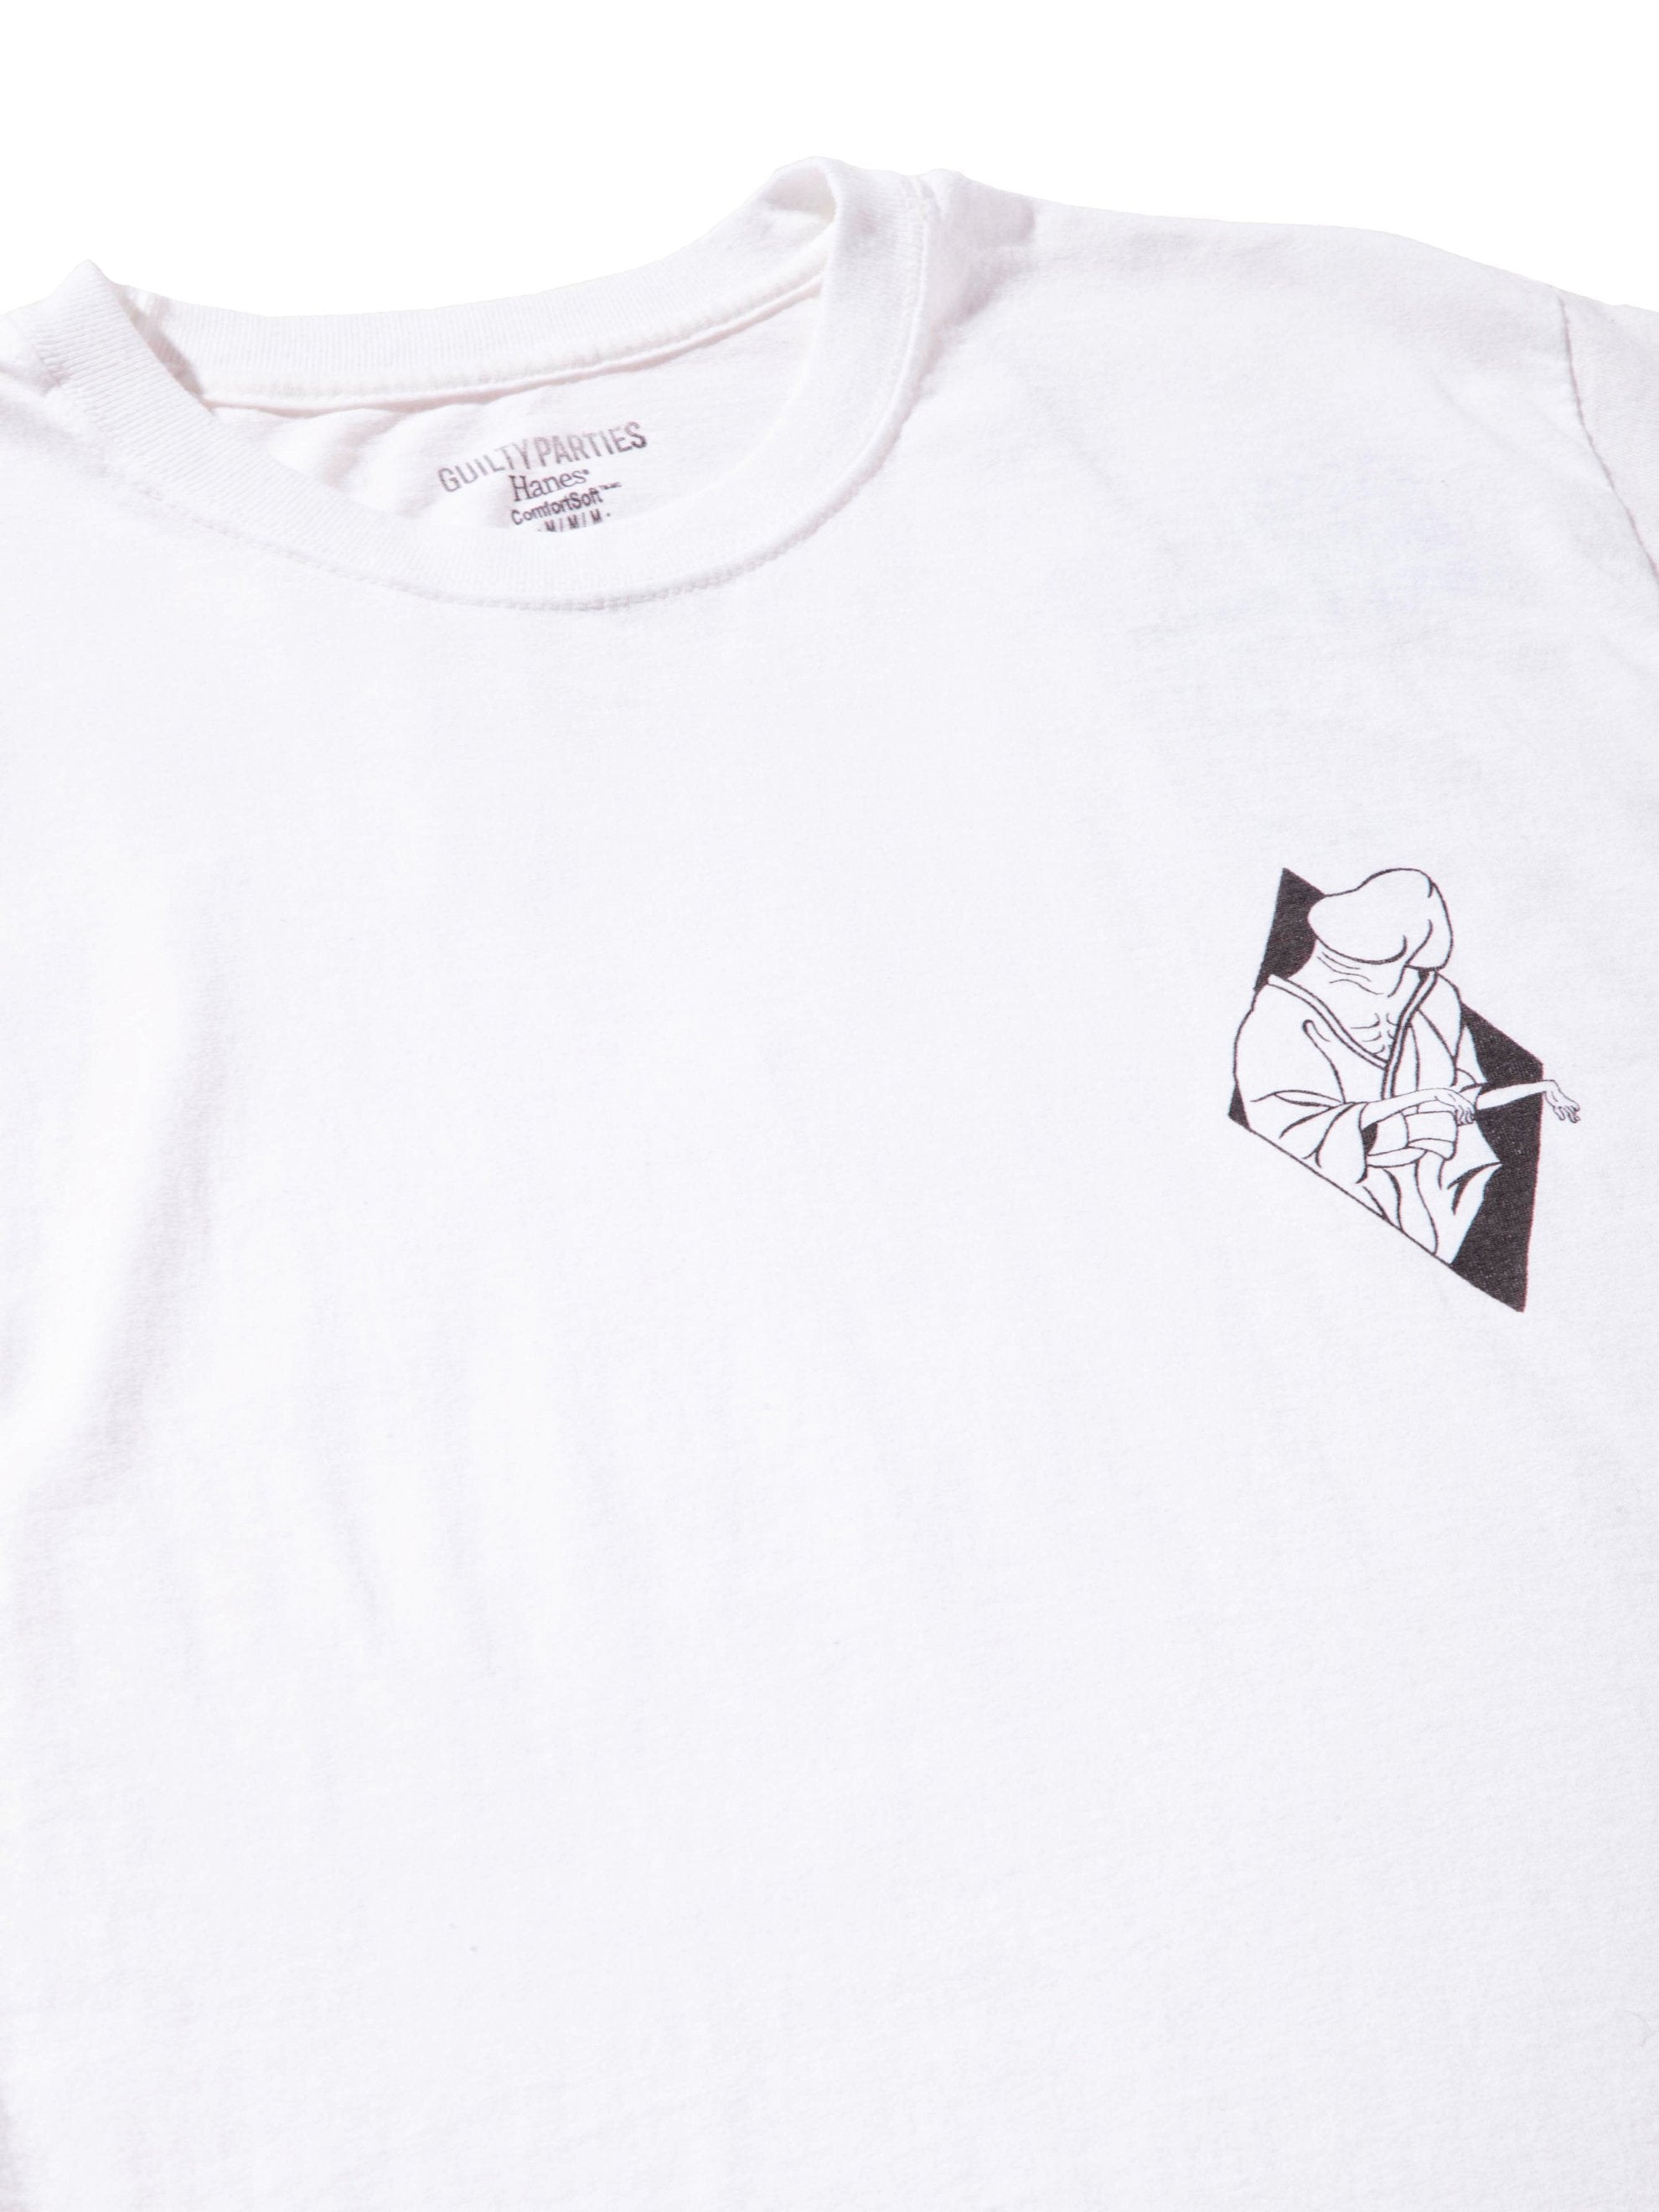 White Souvenior Crew Neck T-Shirt (Type 6) 4